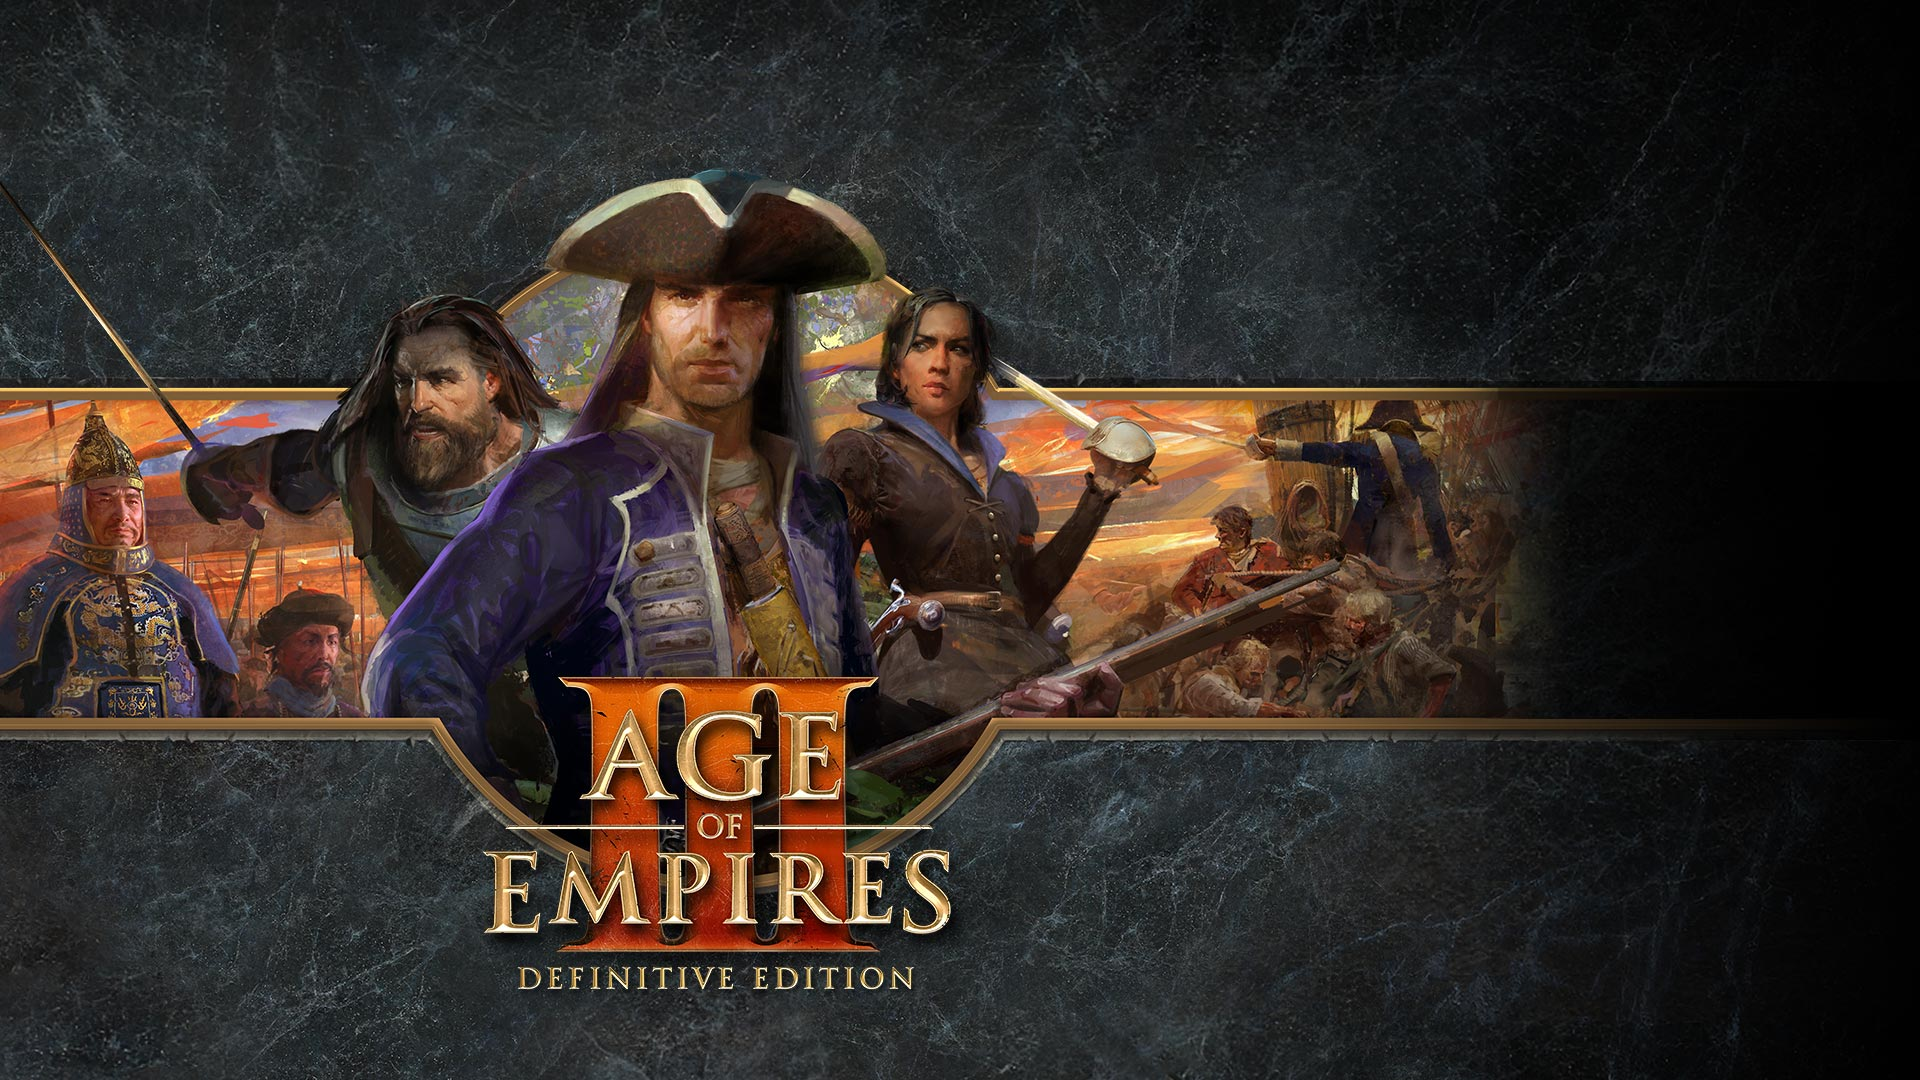 Age of Empires III: Definitive Edition, characters posing